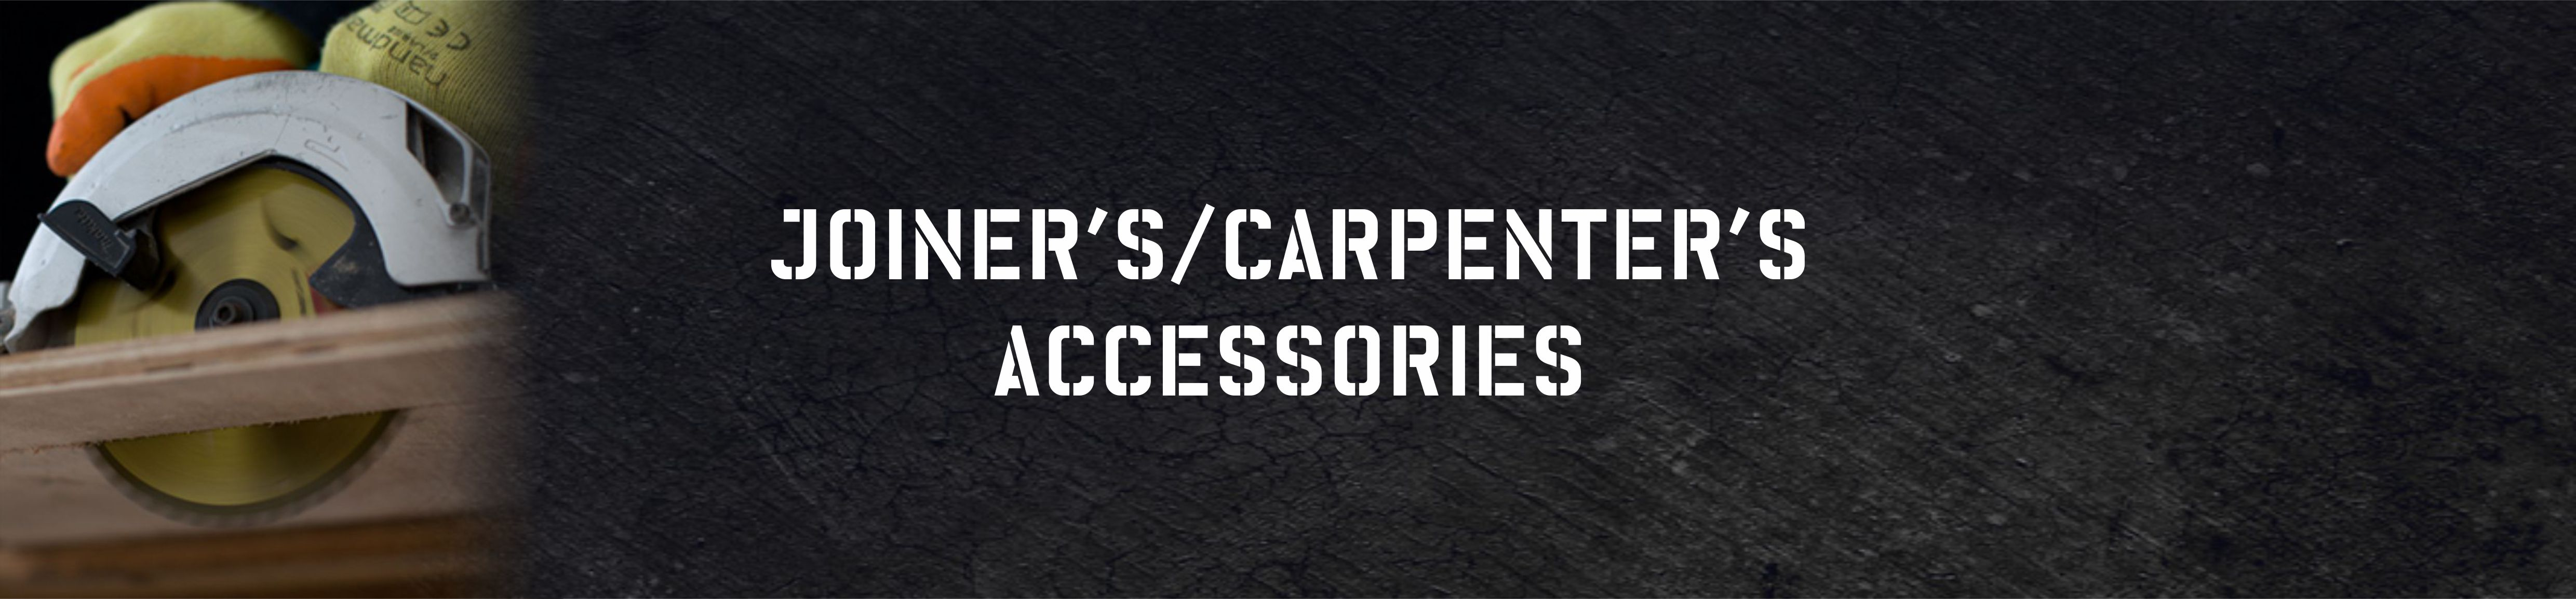 Joiners/Carpenters Accessories